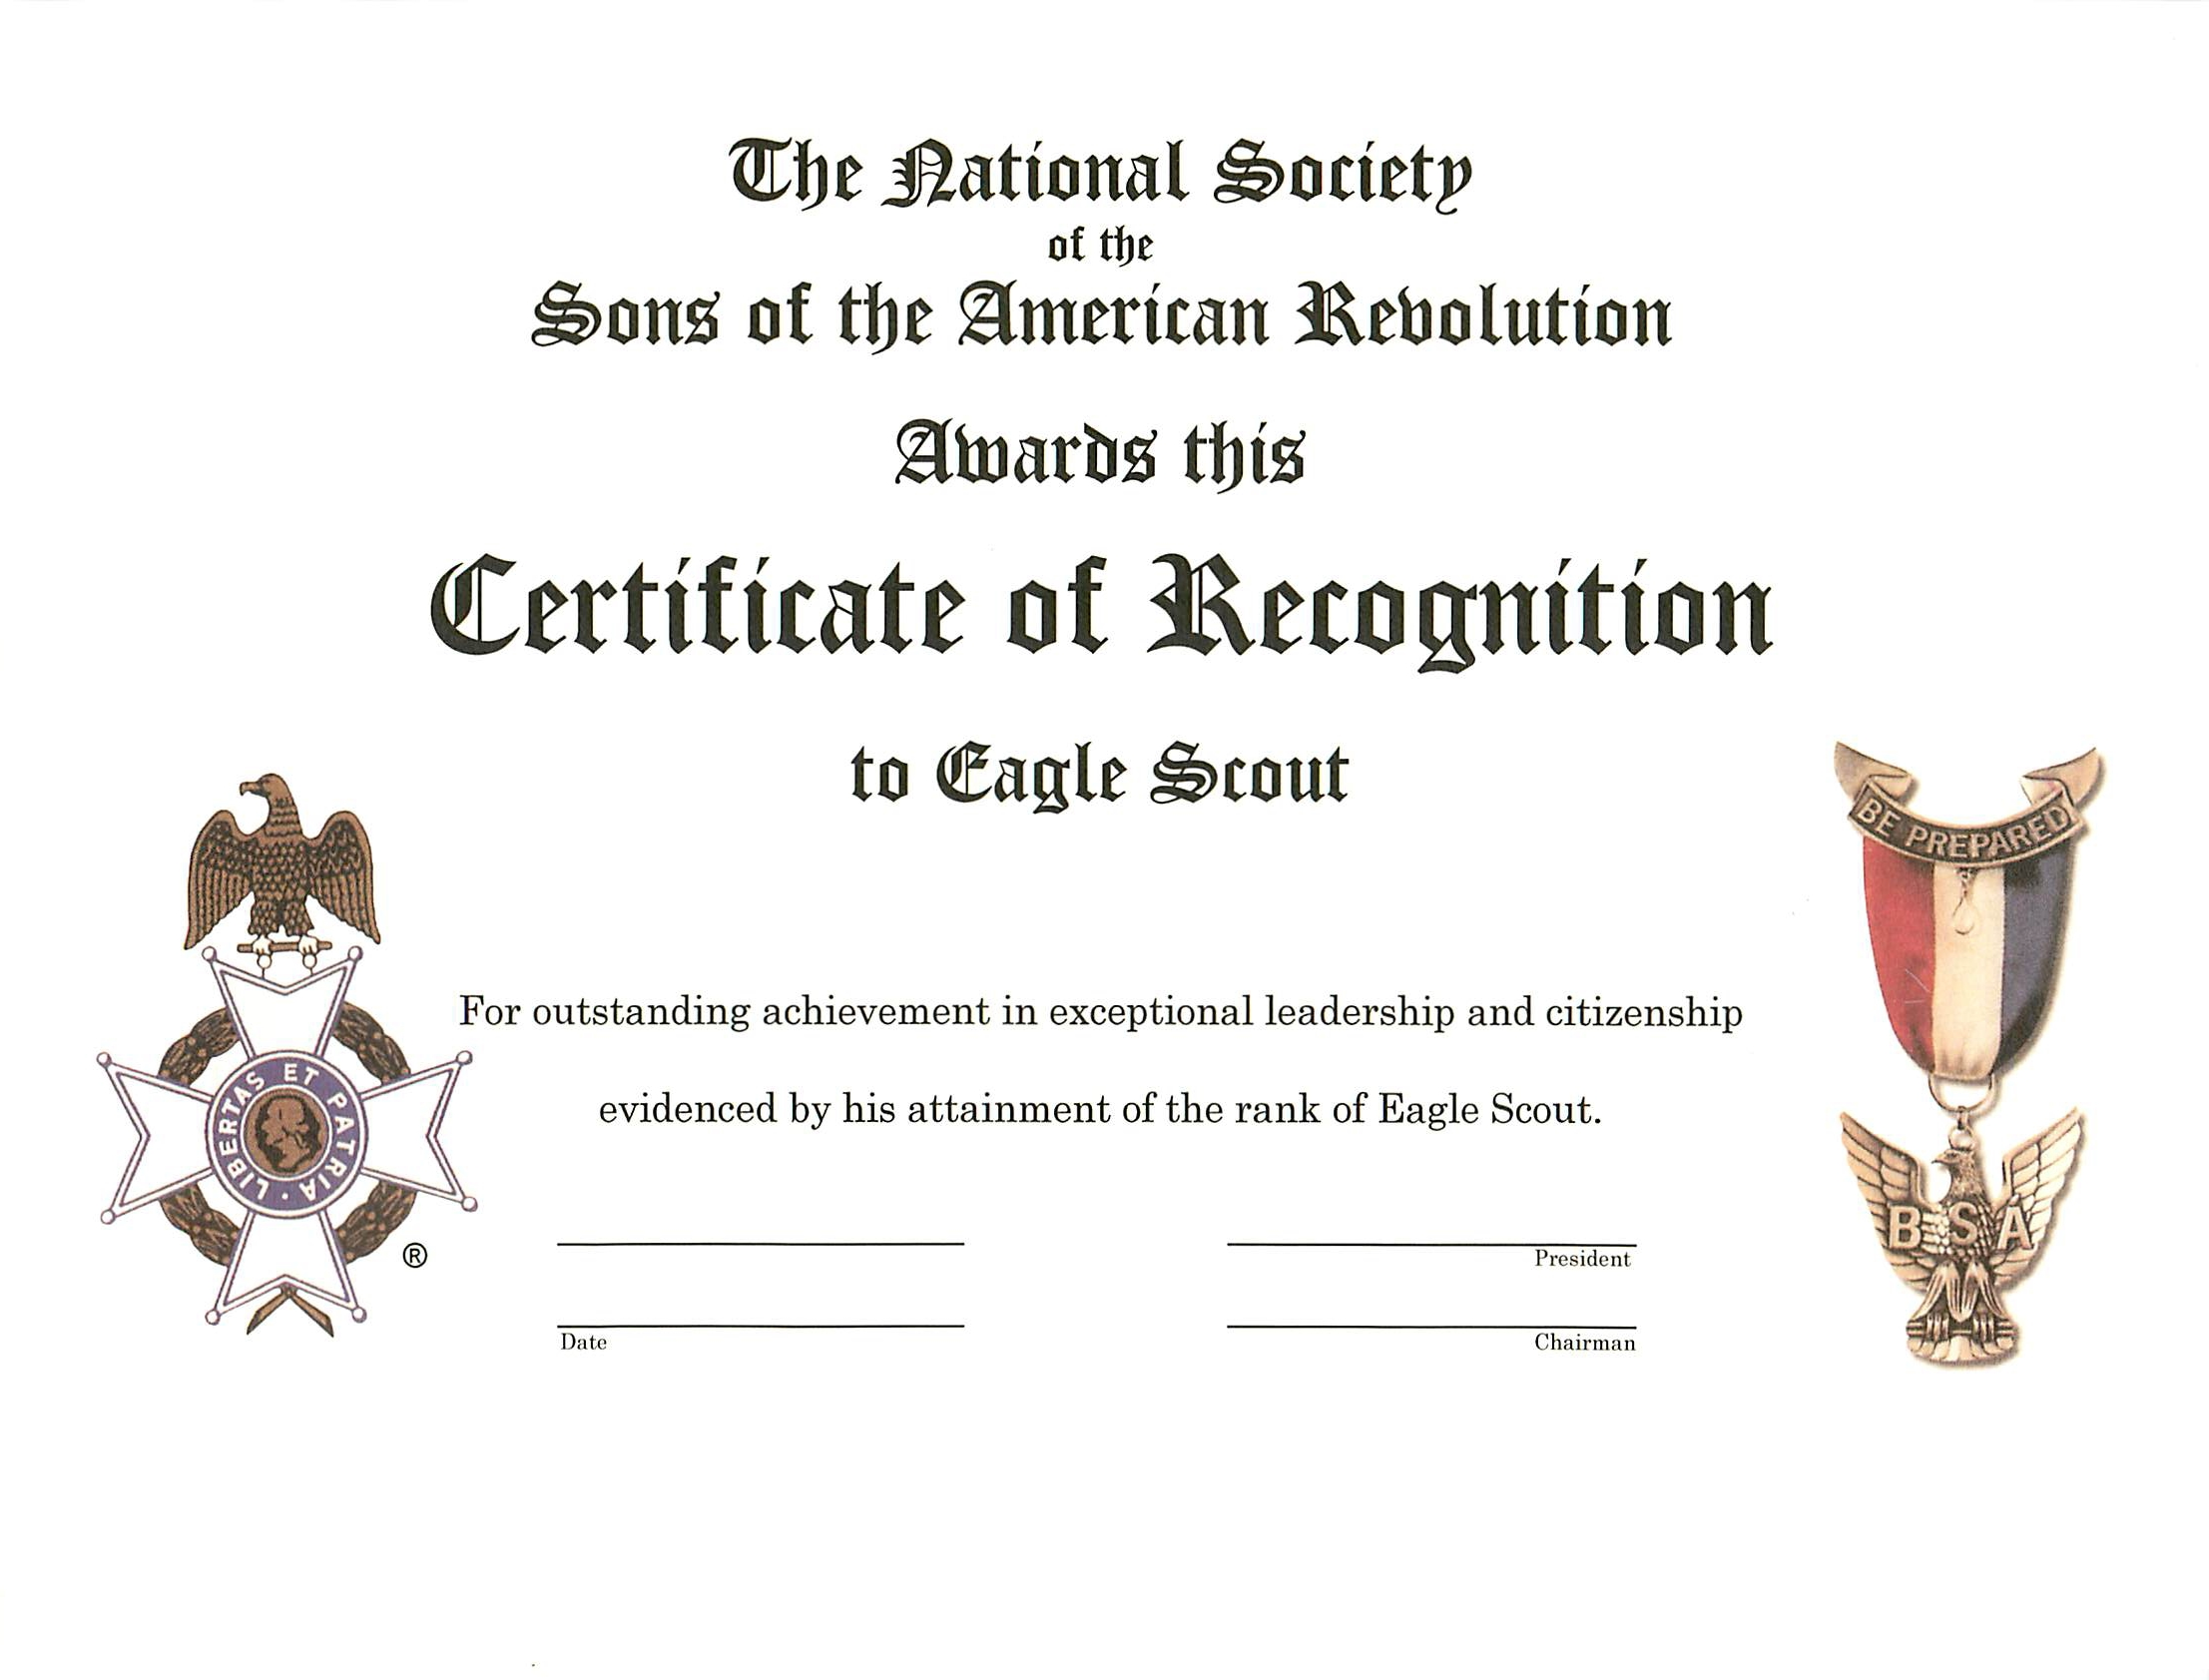 Eagle Scout Recognition Certificate | Utah Society Sons of the ...